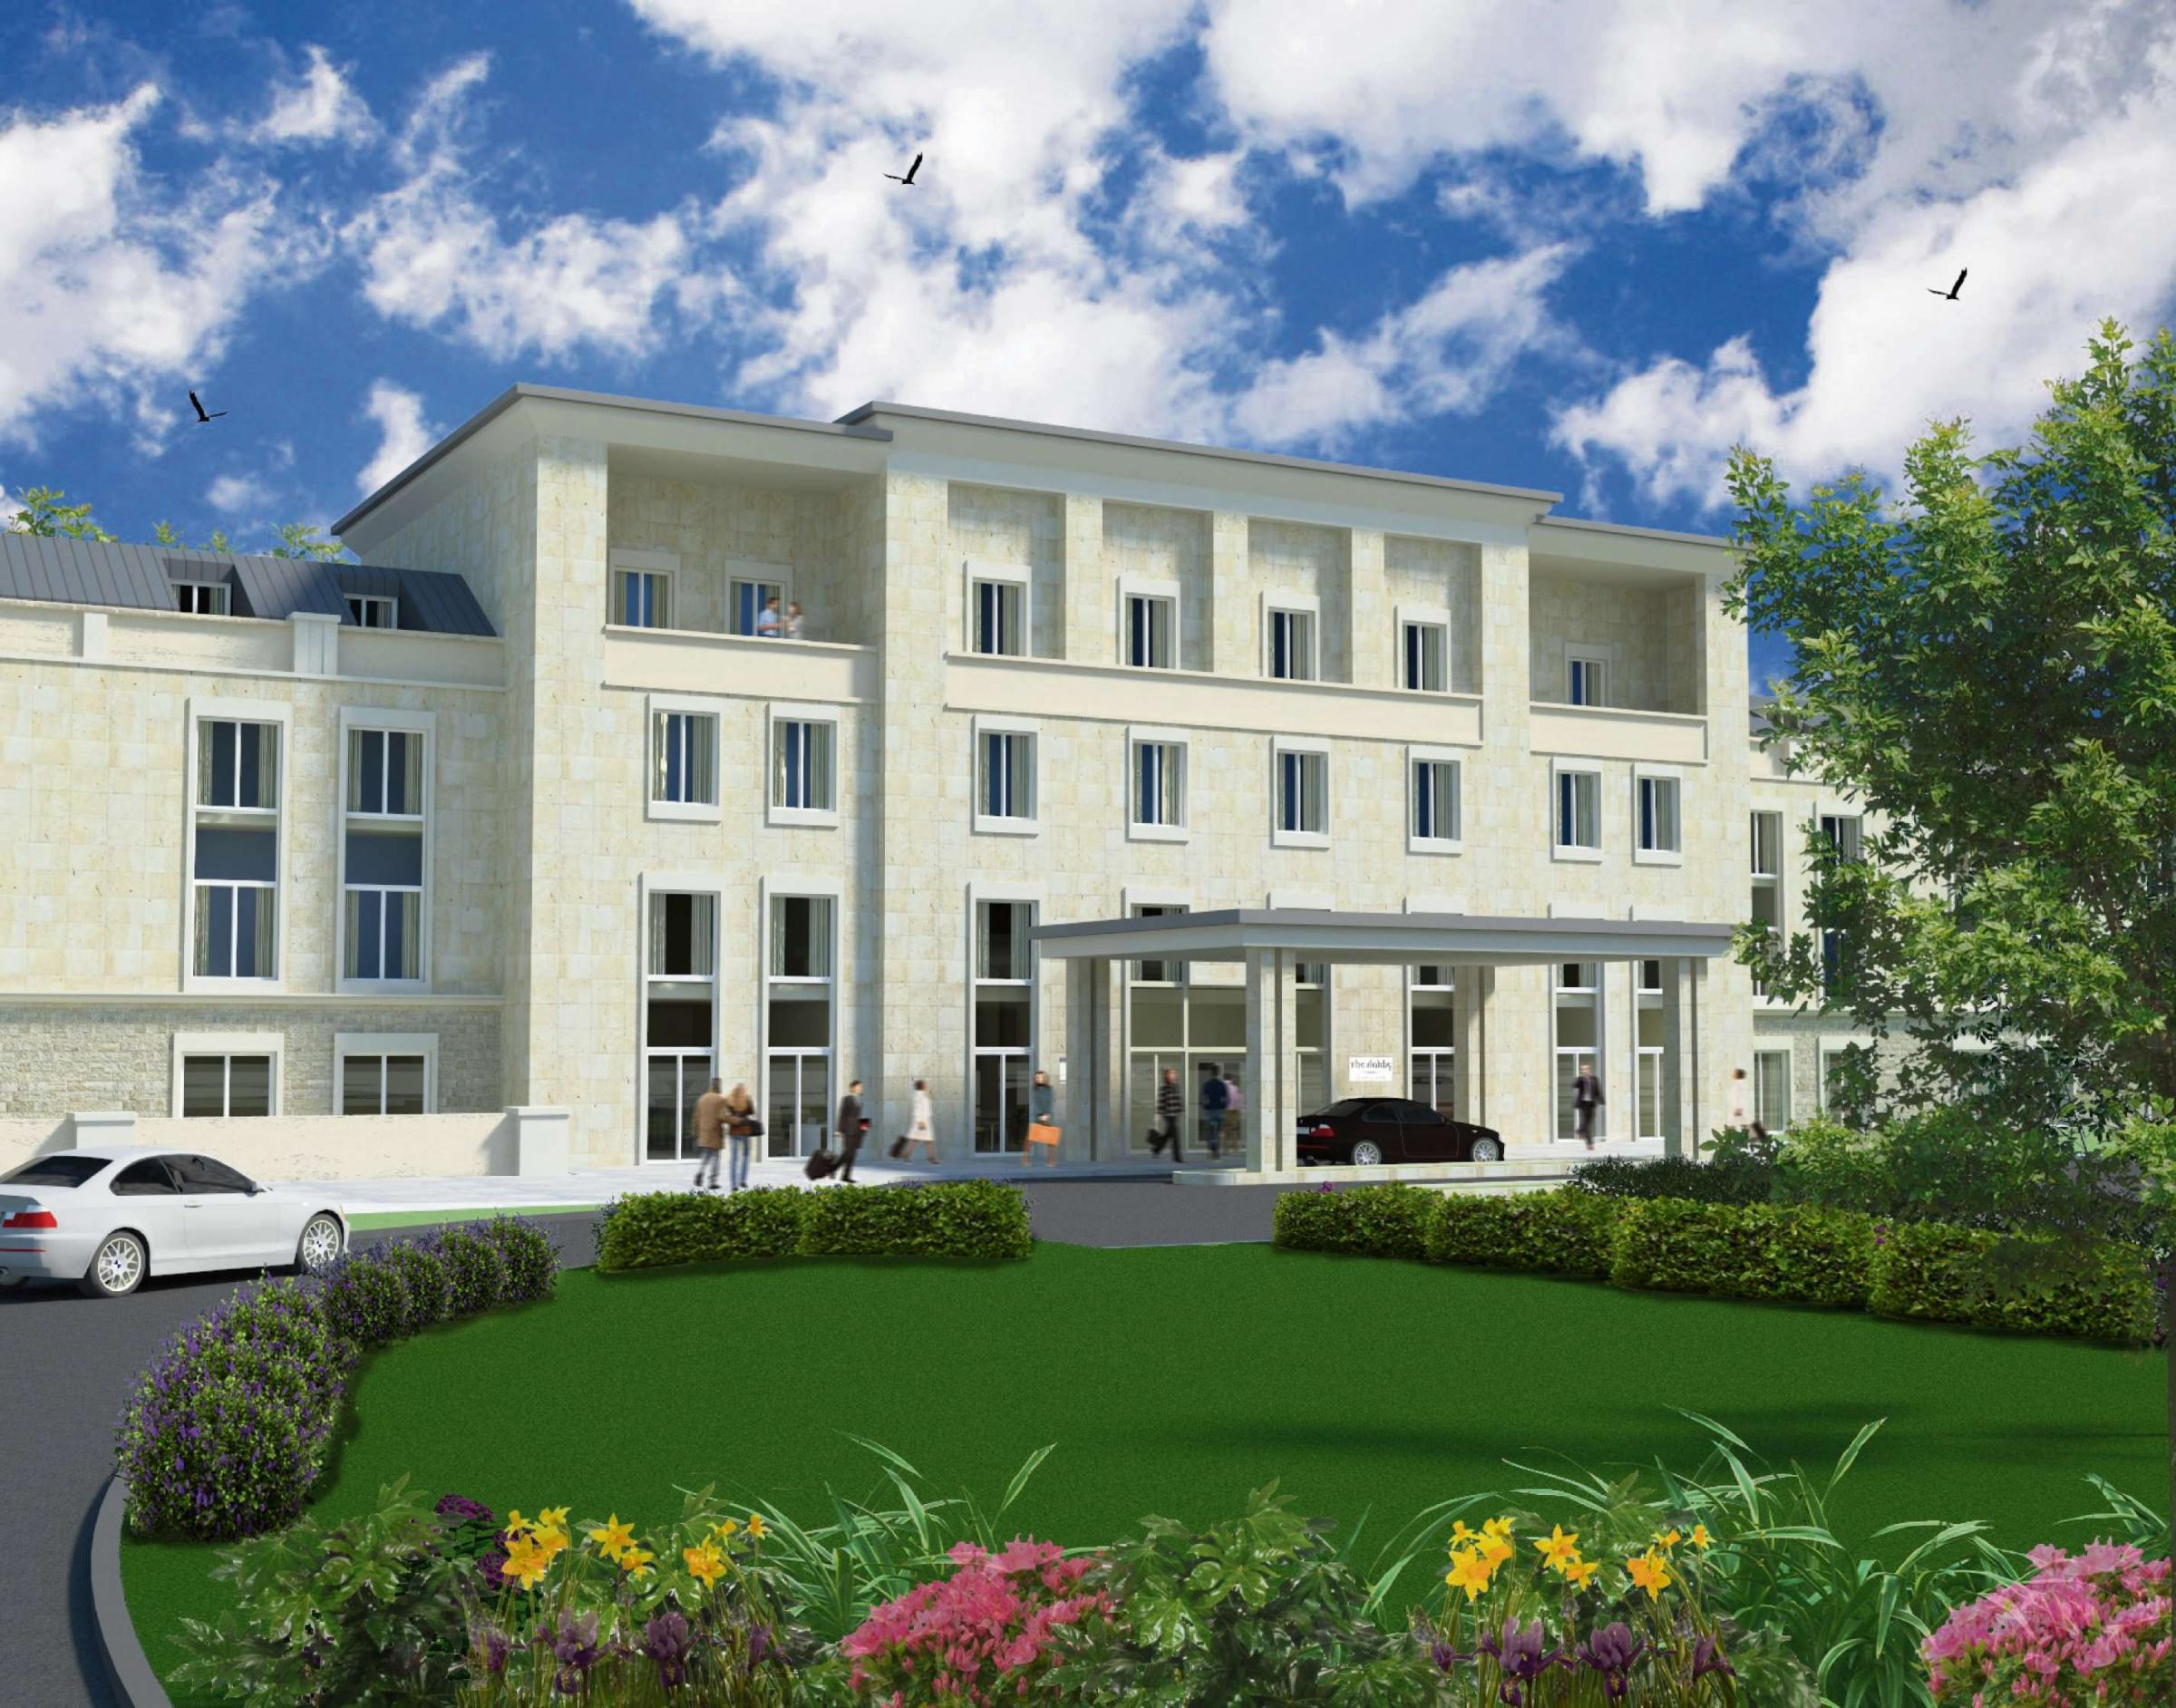 An artist's impression of the Flaxby Country Resort